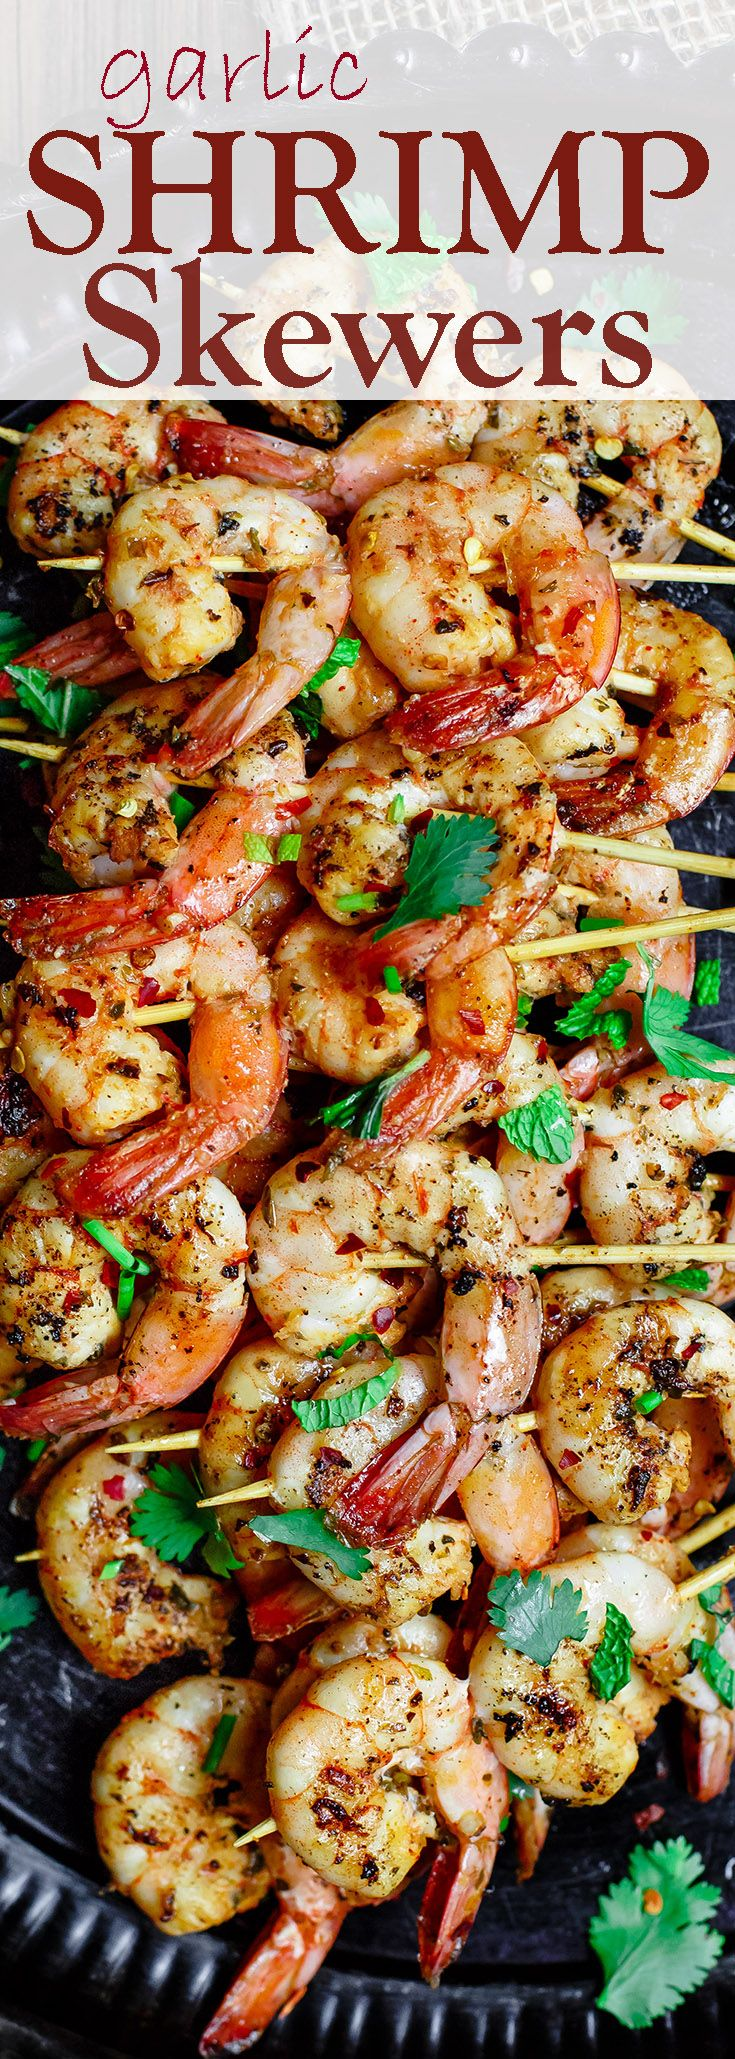 Mediterranean Garlic Shrimp Skewers   The Mediterranean Dish. Shrimp flavored the Mediterranean way with oregano, sweet paprika, garlic paste. Marinated in a simple olive oil and lemon juice. Use a grill, griddle or skillet. Cooks in 5-7 minutes. It's the perfect party appetizer or turn it into dinner! See the recipe on TheMediterraneanDish.com